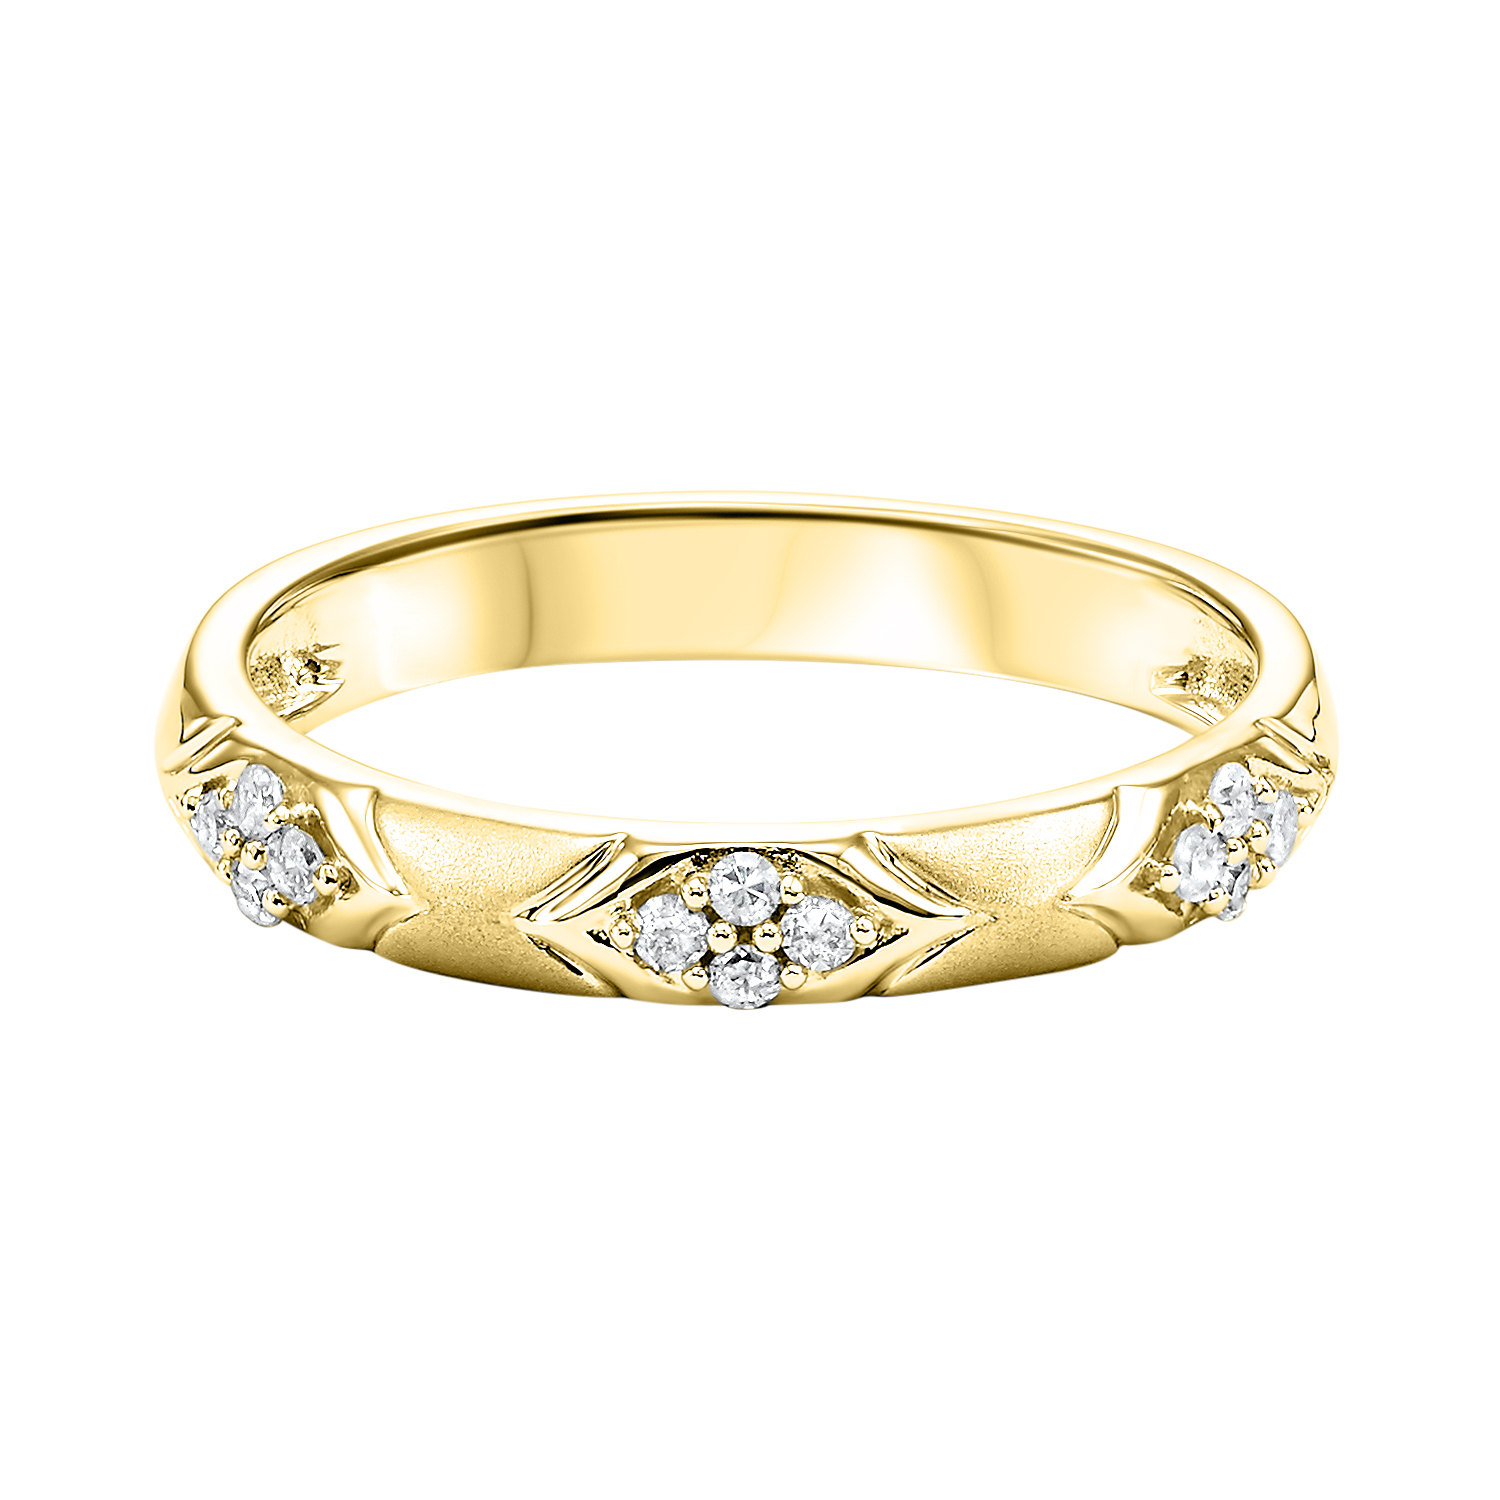 10K Yellow Gold Stackable Prong Diamond Band (1/8 ct. tw.) Moseley Diamond Showcase Inc Columbia, SC